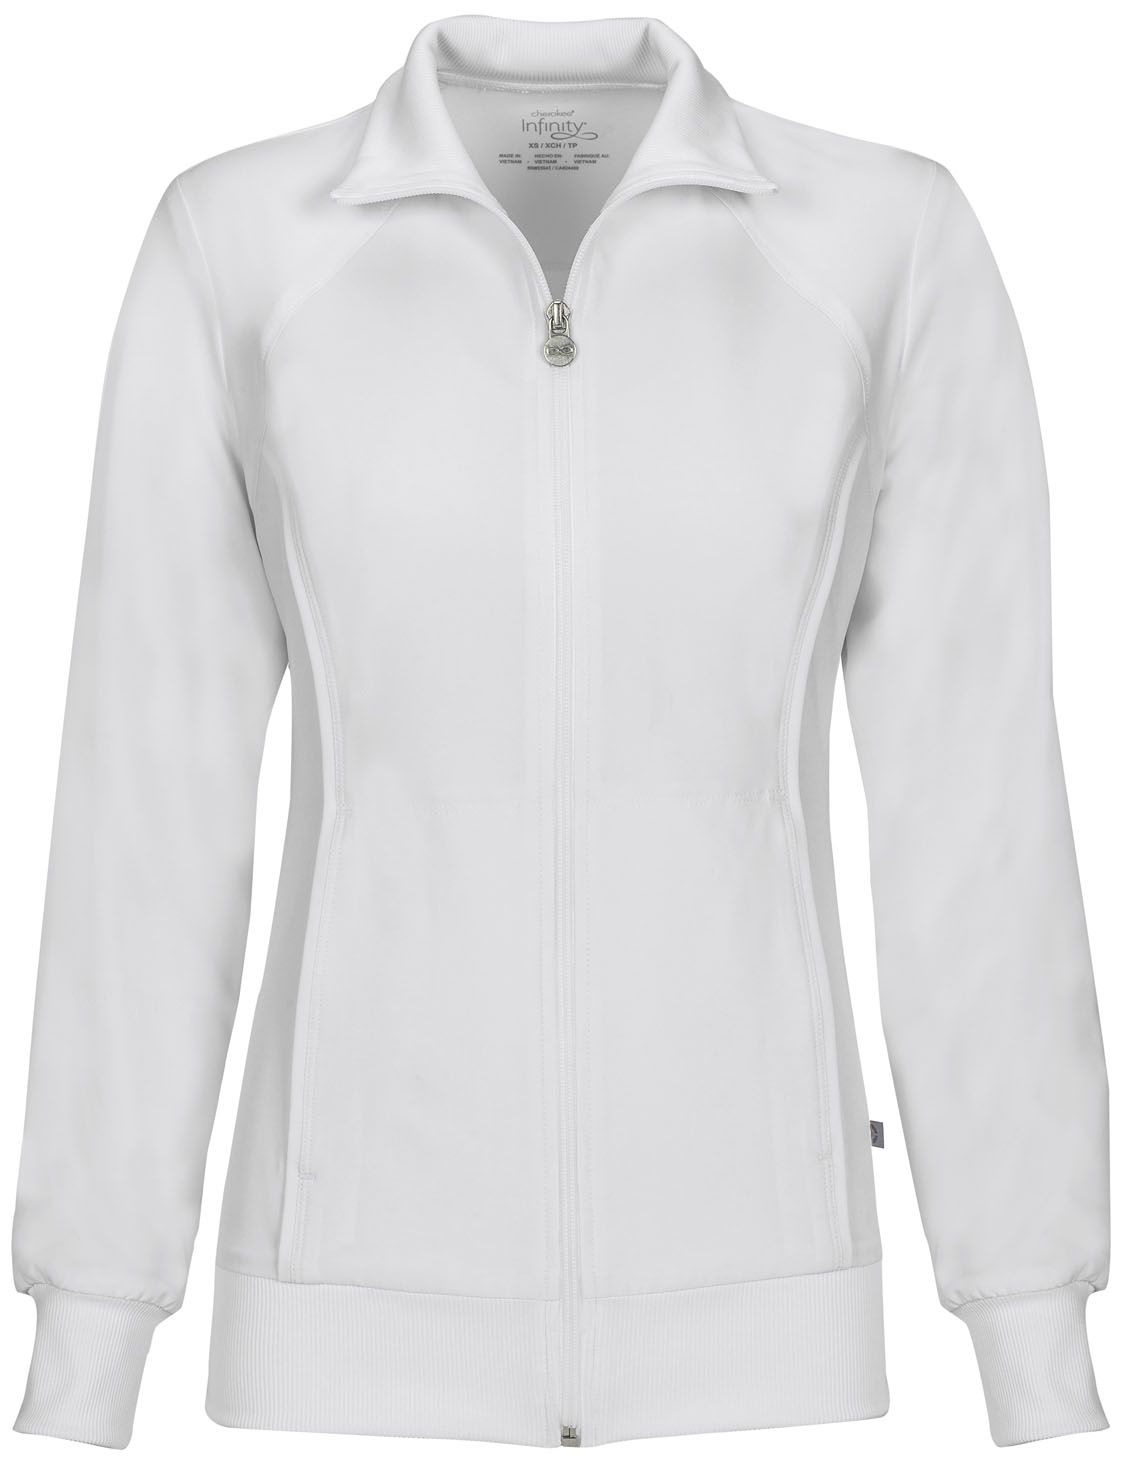 7f6038c6da5 Infinity Zip Front Warm-Up Jacket in White 2391A-WTPS from Scrubs ...